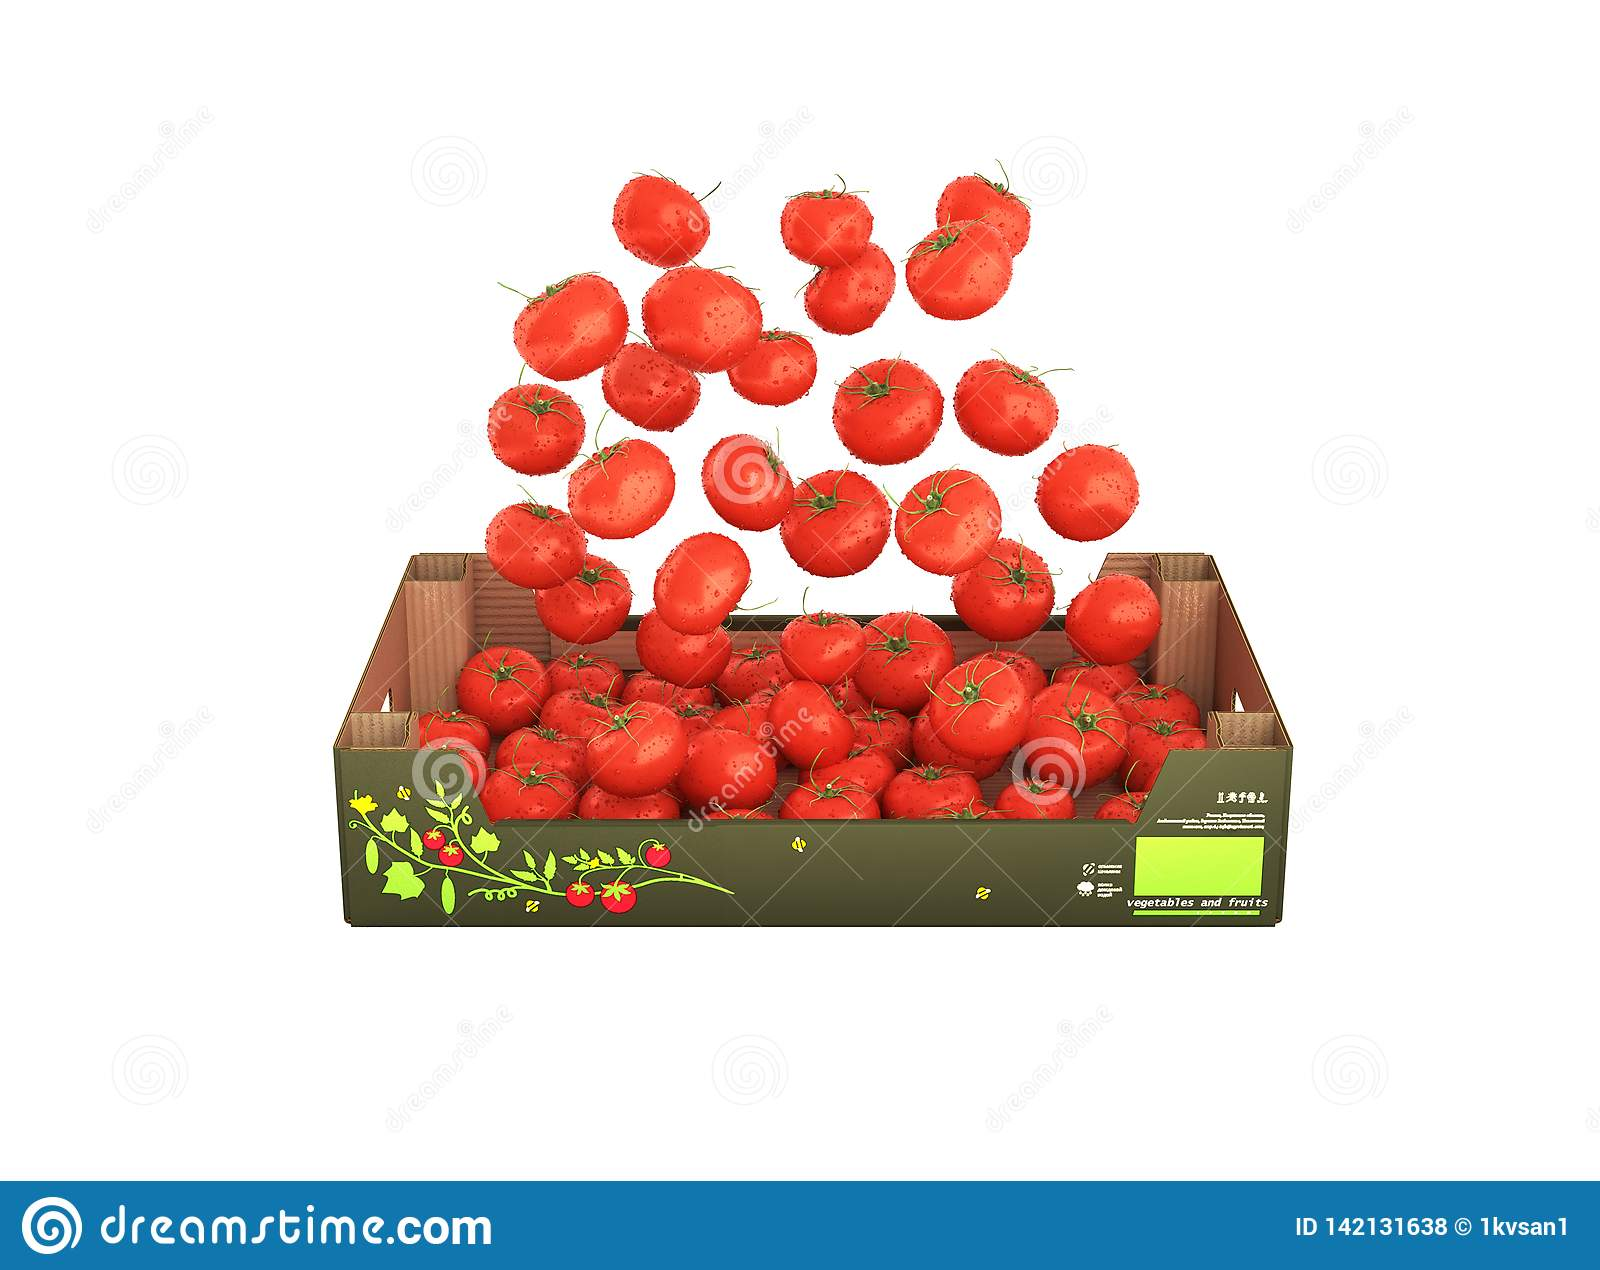 Tomatoes fall into the box without shadow on white background 3d